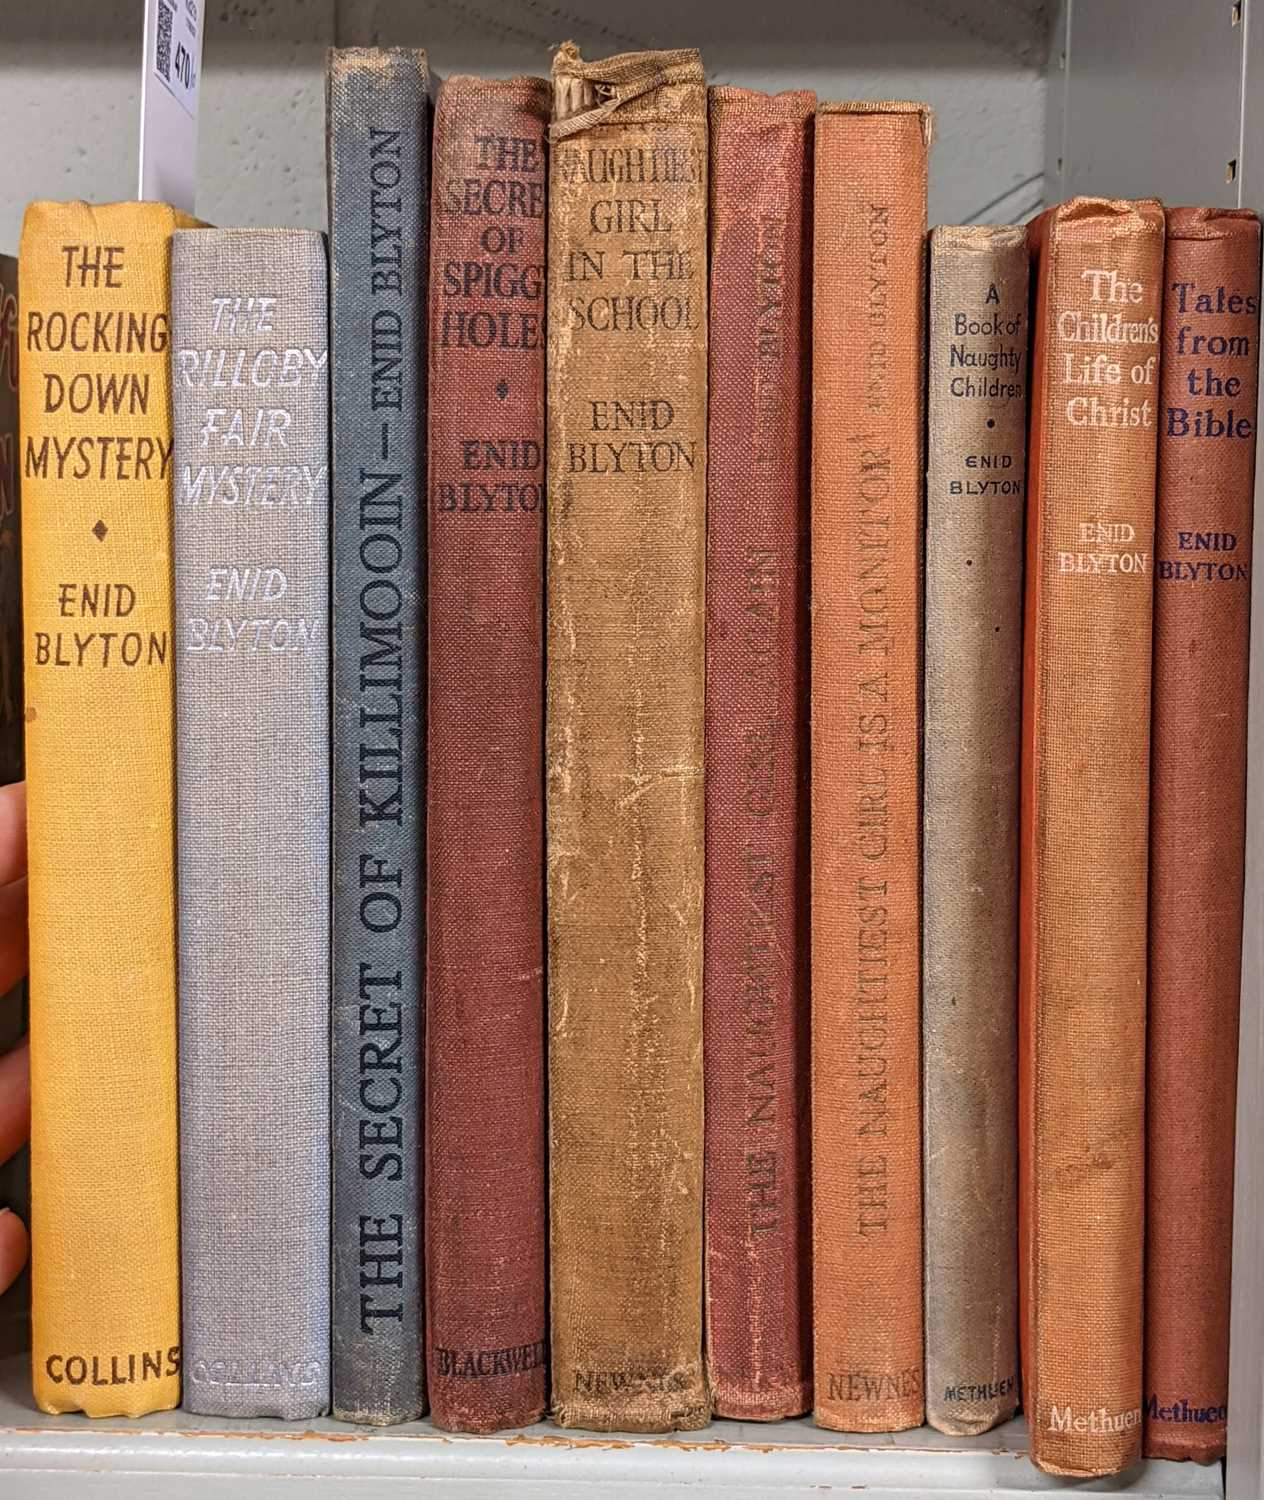 Lot 470 - Blyton (Enid). The Rockingdown Mystery, and others, mixed editions, all signed